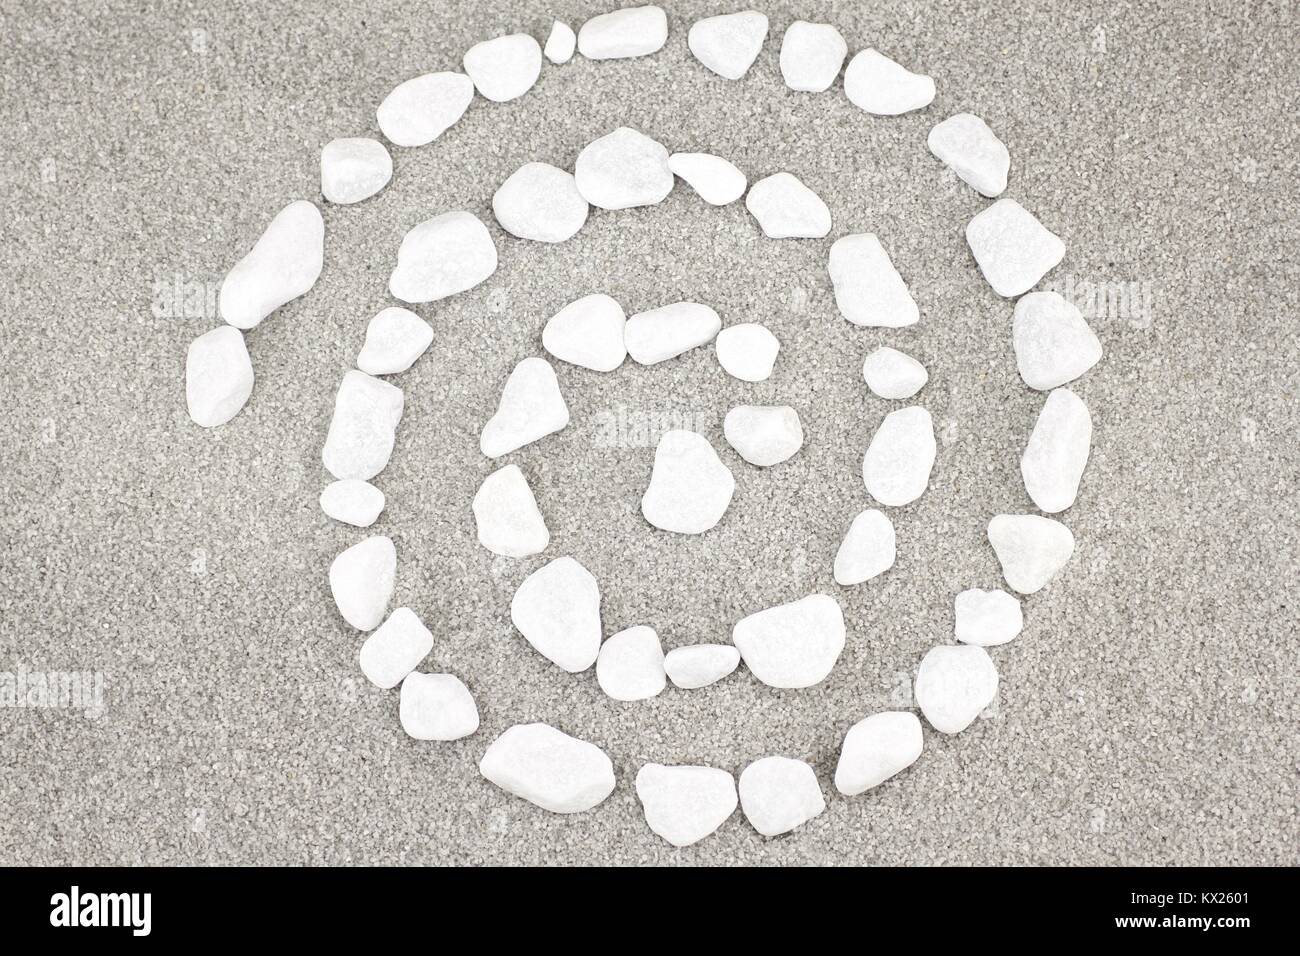 White pebbles arranged in a spiral - Stock Image